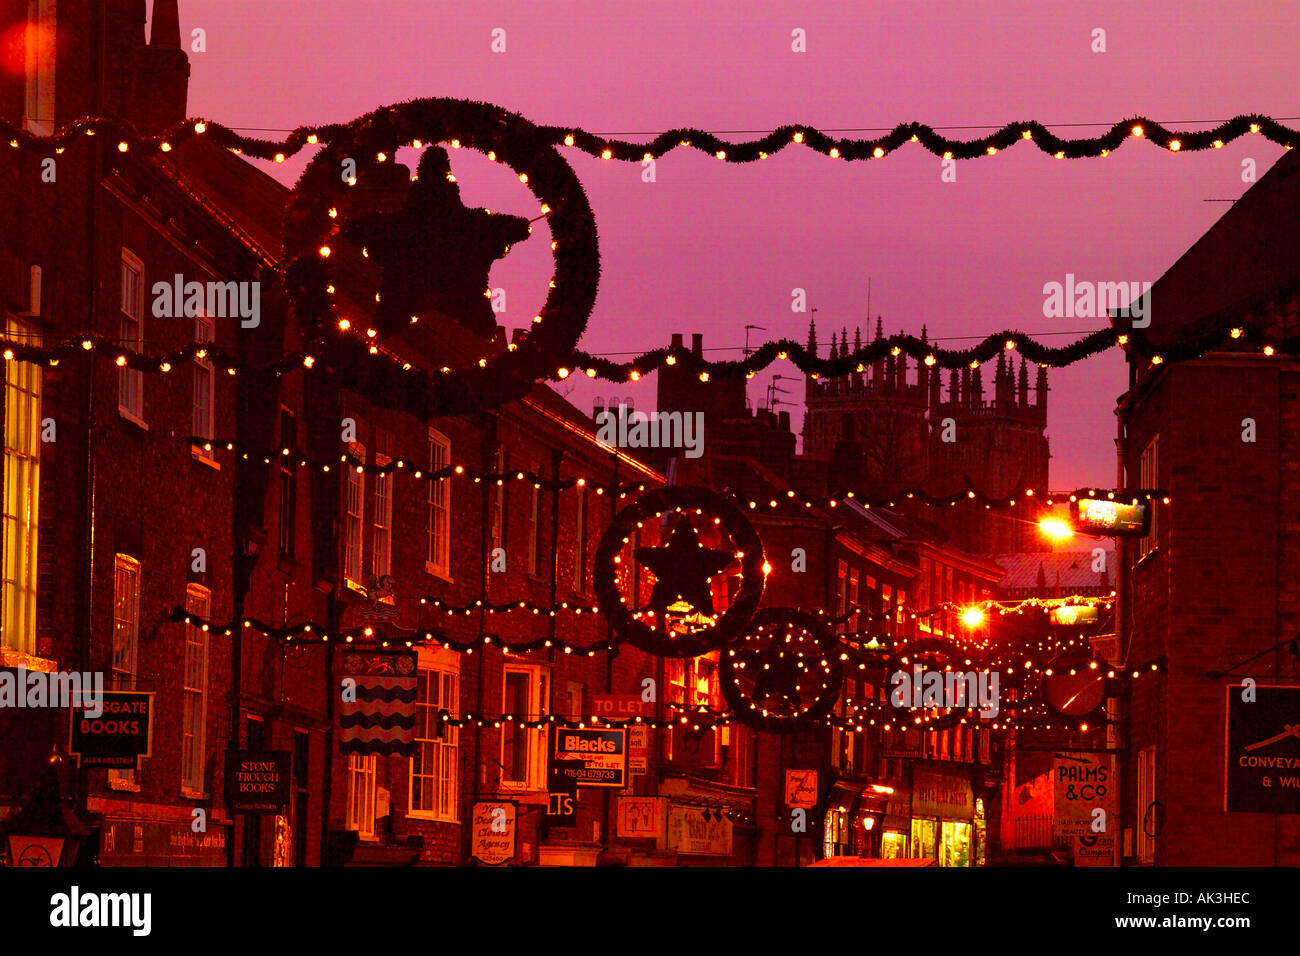 Christmas light display down Fossgate York UK - Stock Image